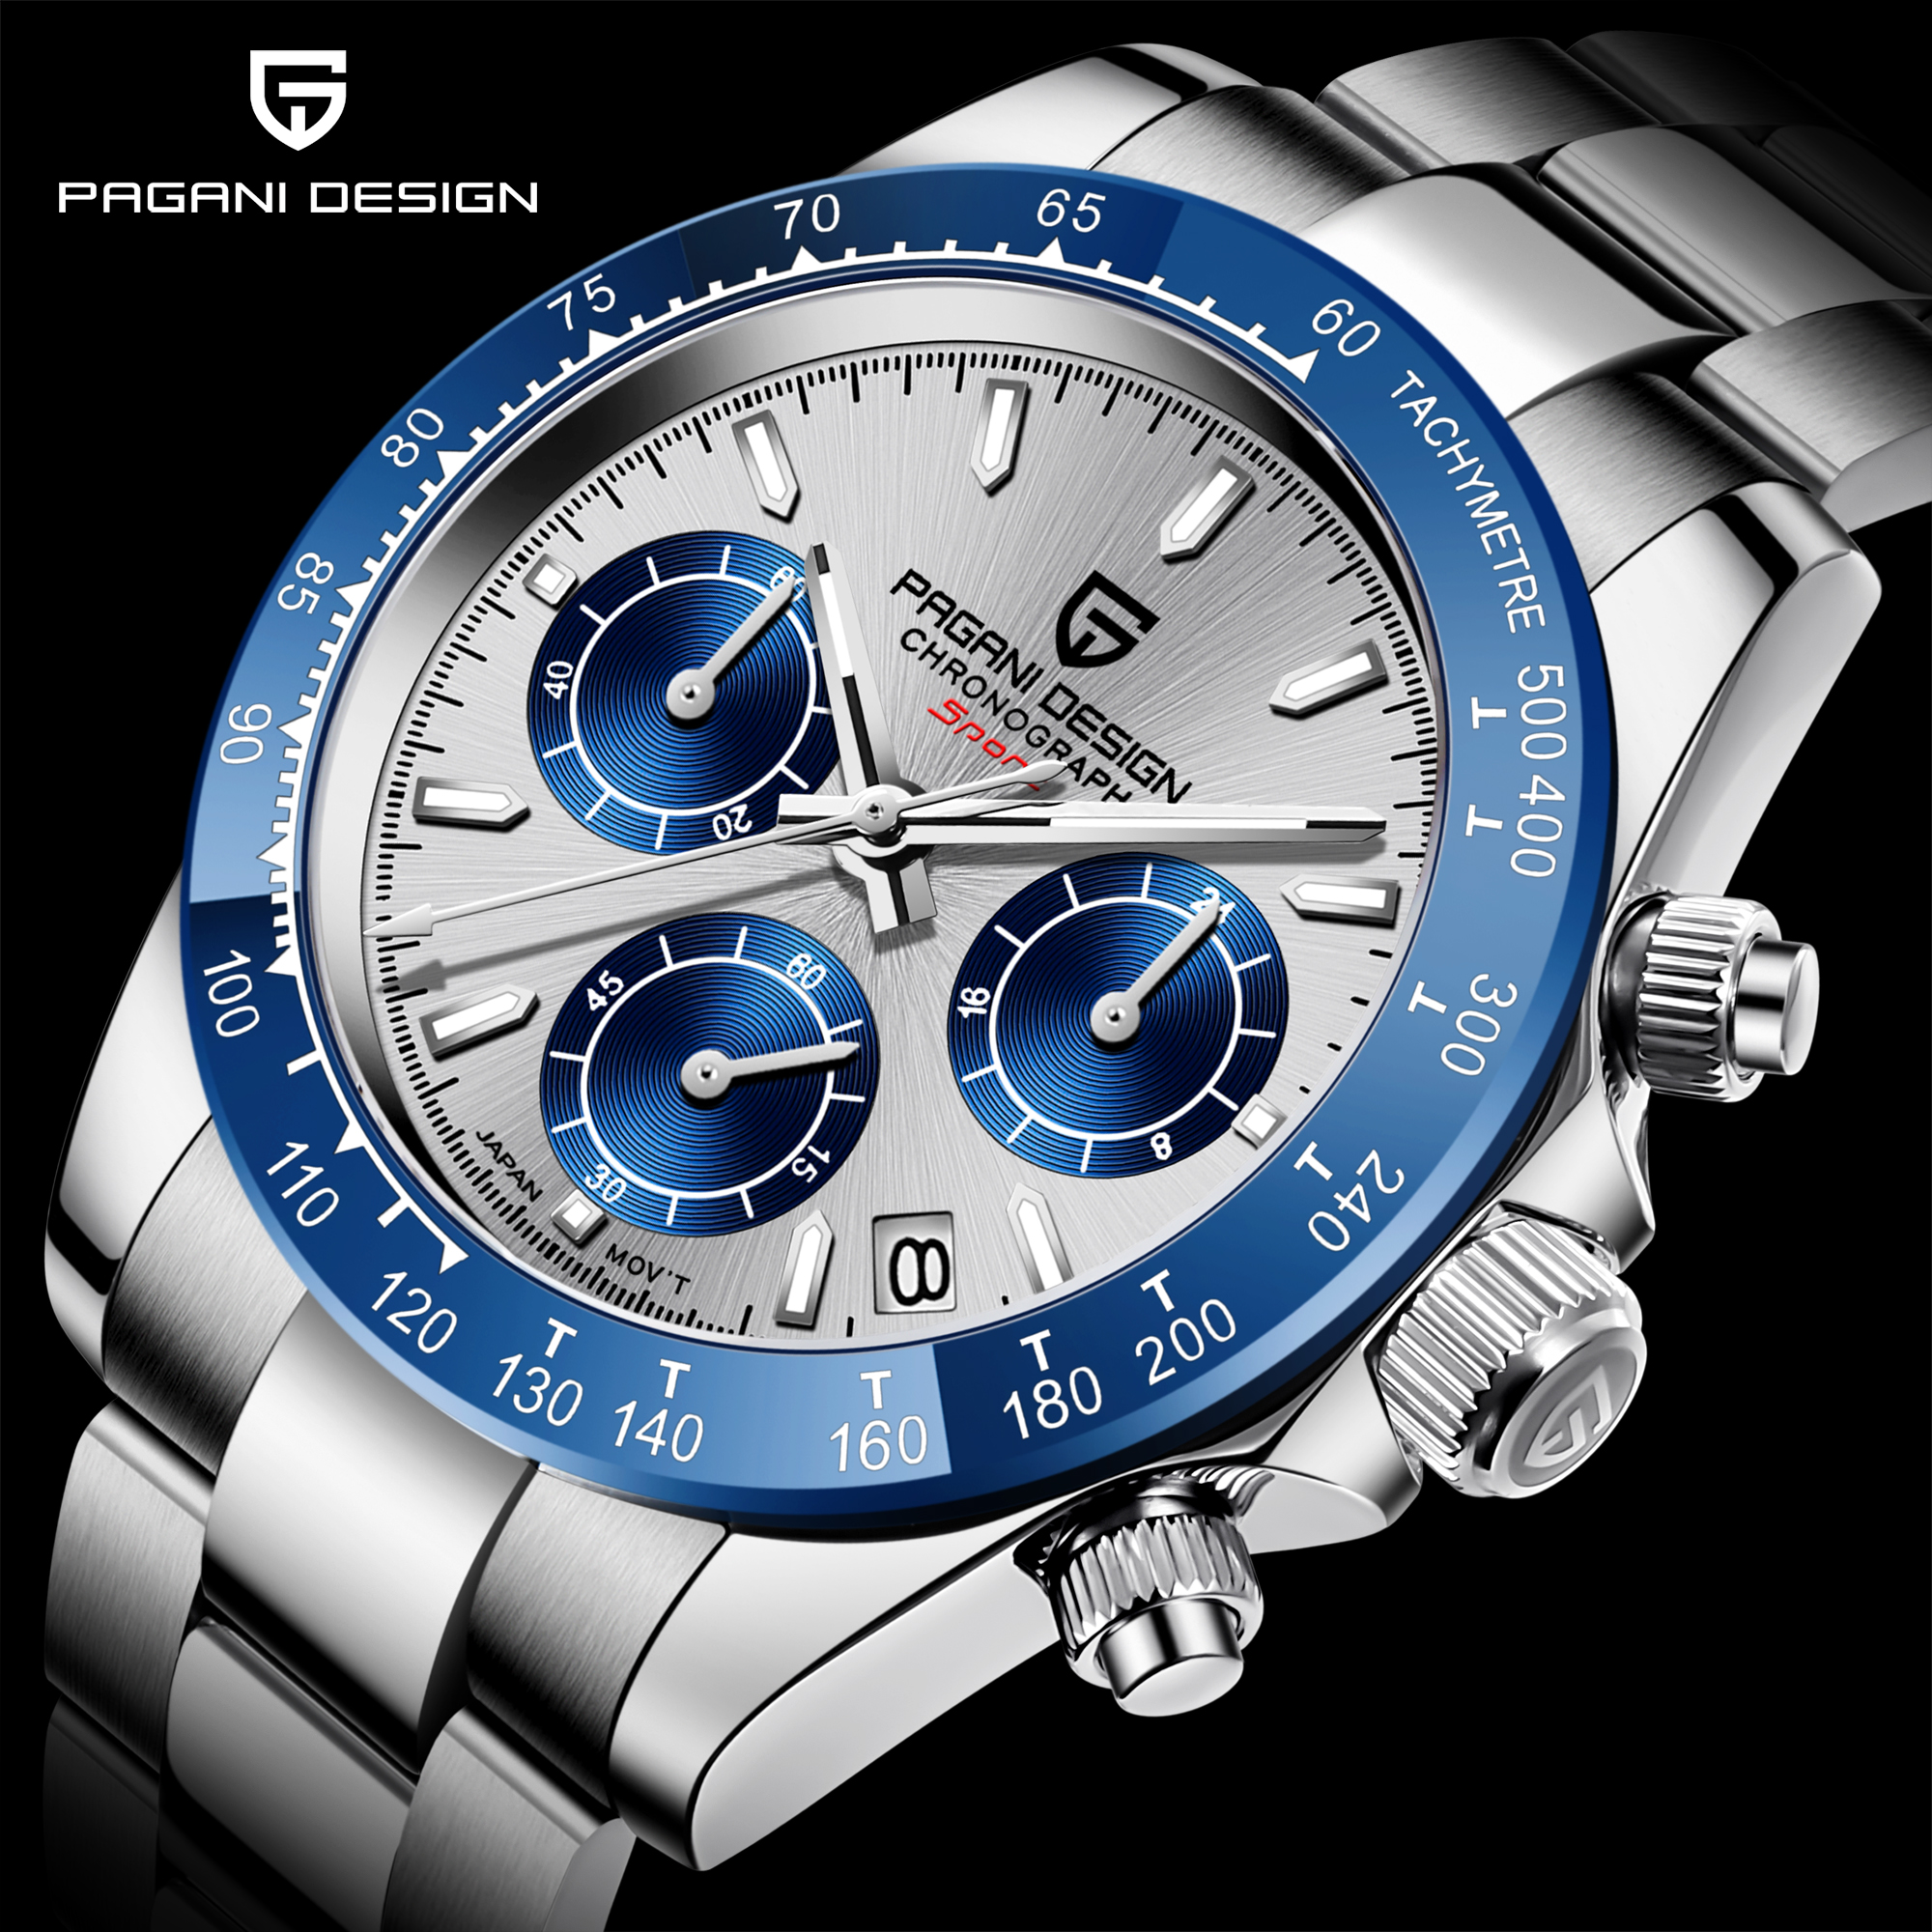 PAGANI DESIGN Business Men's Watches <font><b>100M</b></font> Waterproof Sport WristWatch Sapphire Daytona Stainless Steel Men Chronograph Watch New image